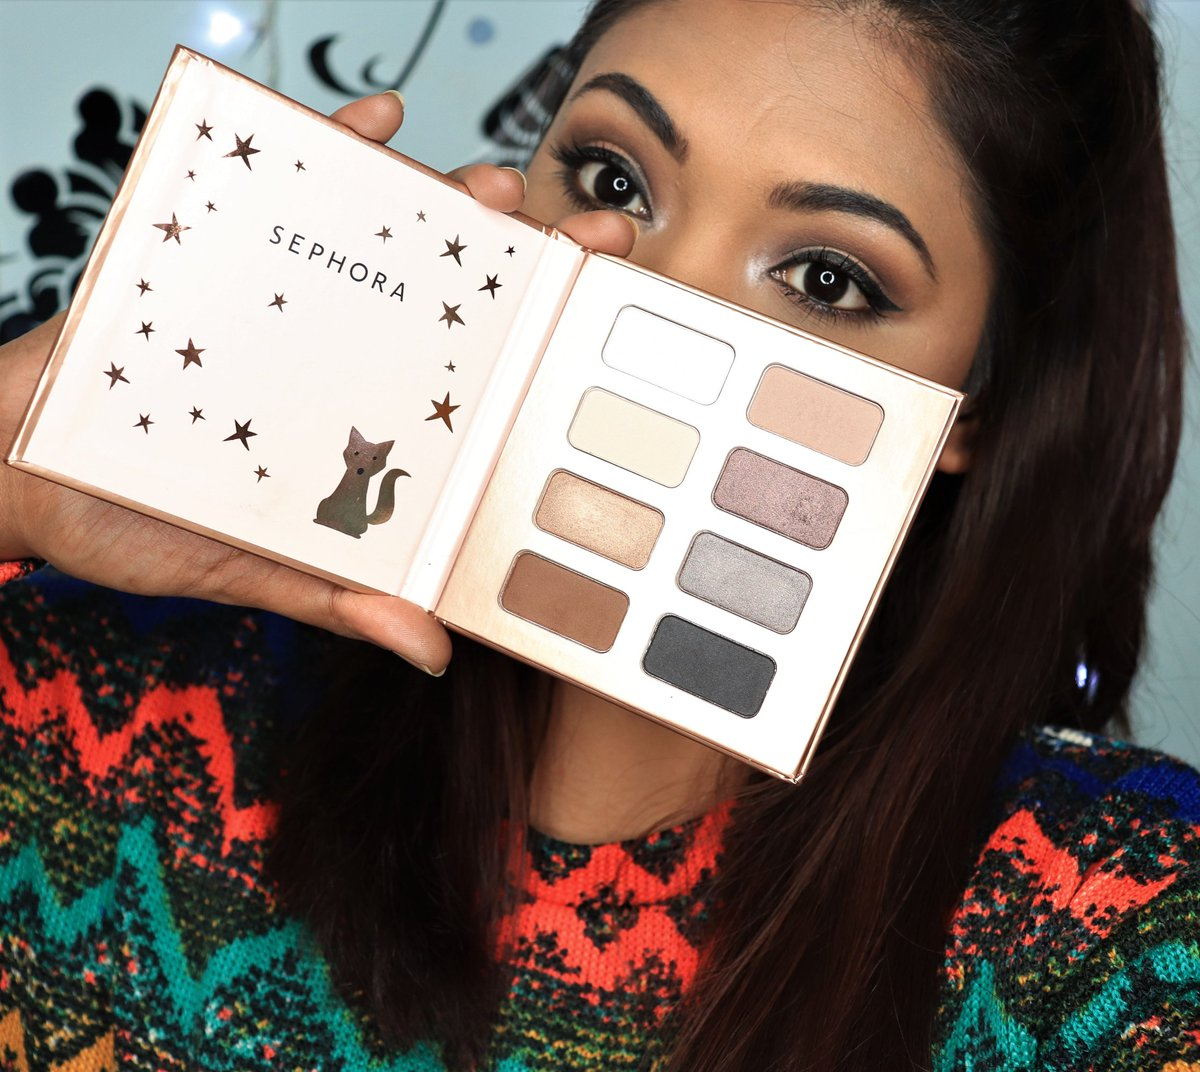 New Sephora Winter Collection! @sephorasg  Winter Magic Pallete Review just went live on my channel!!  https:// youtu.be/e9mvxQxX6is  &nbsp;   #sephorasg #sephora #wintercollection<br>http://pic.twitter.com/2JV2iB3T6U